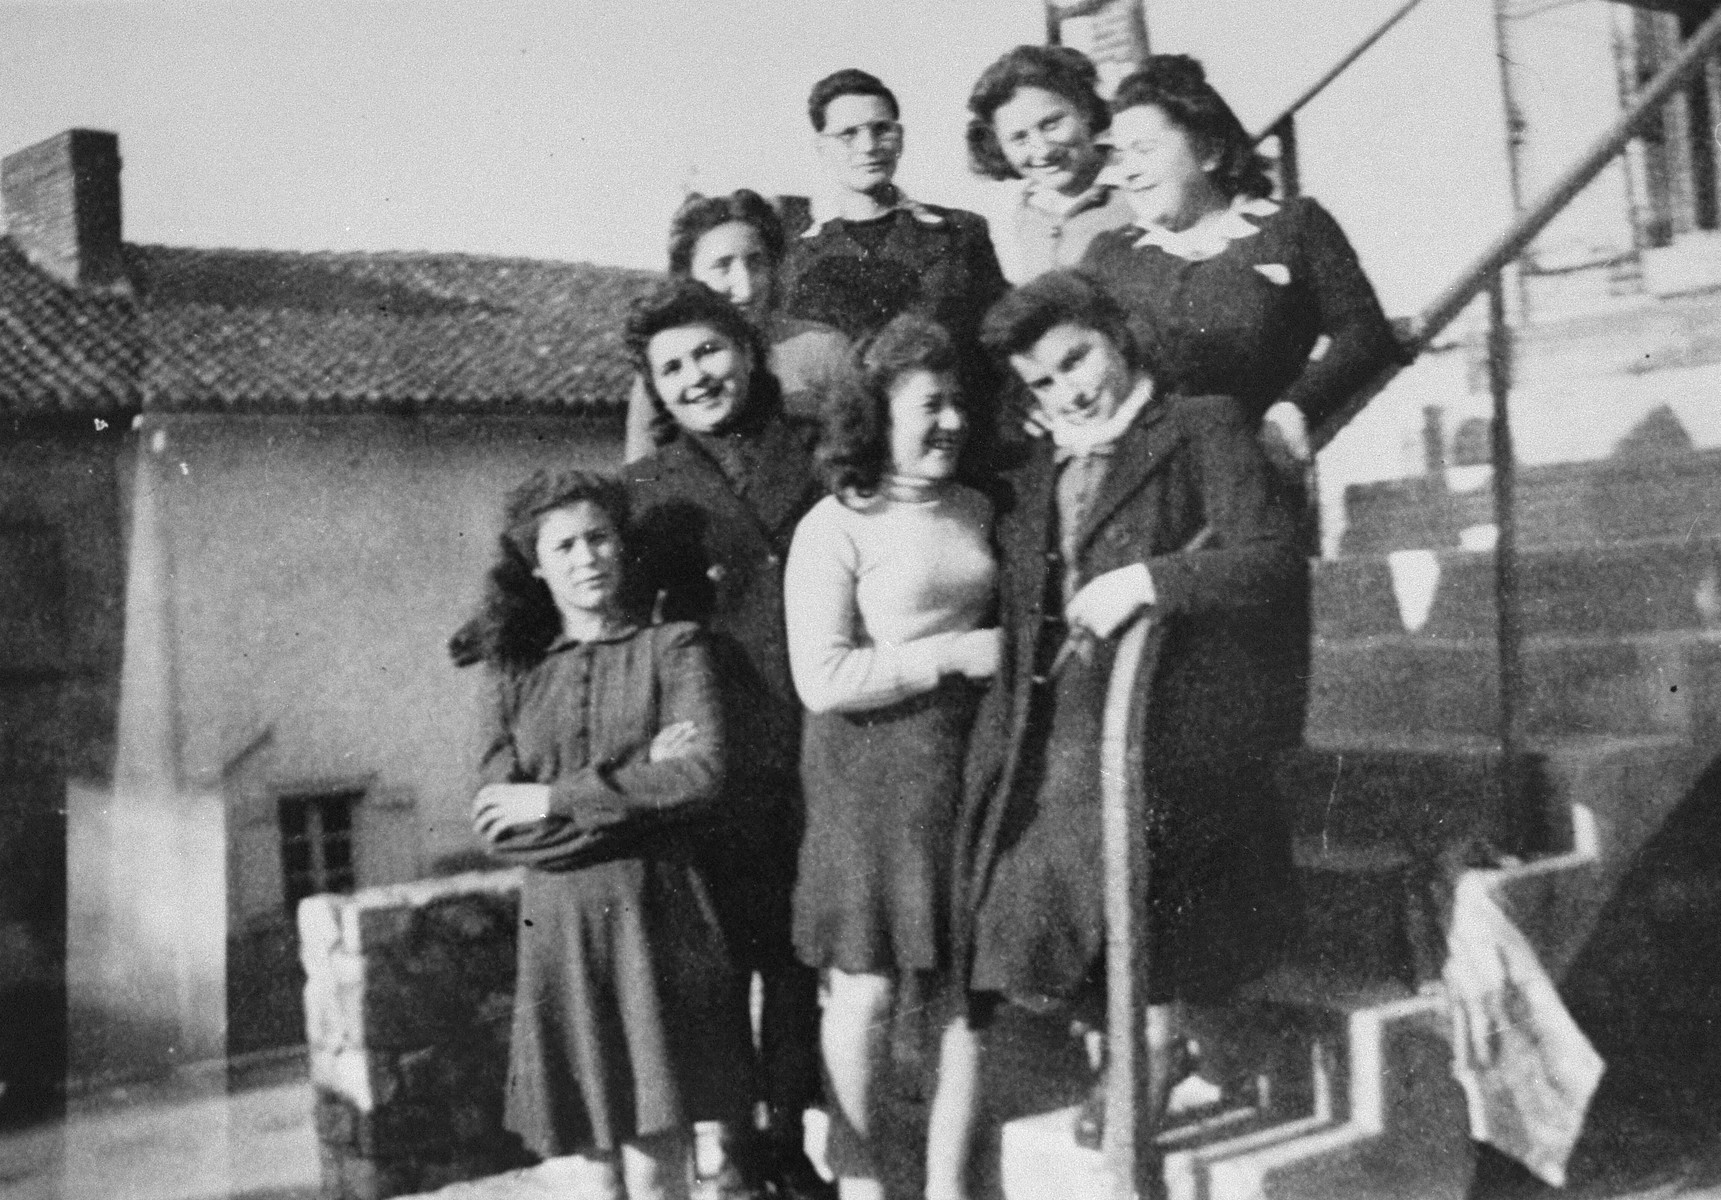 Group portrait of Jewish youth at the OSE children's home in Poulouzat.